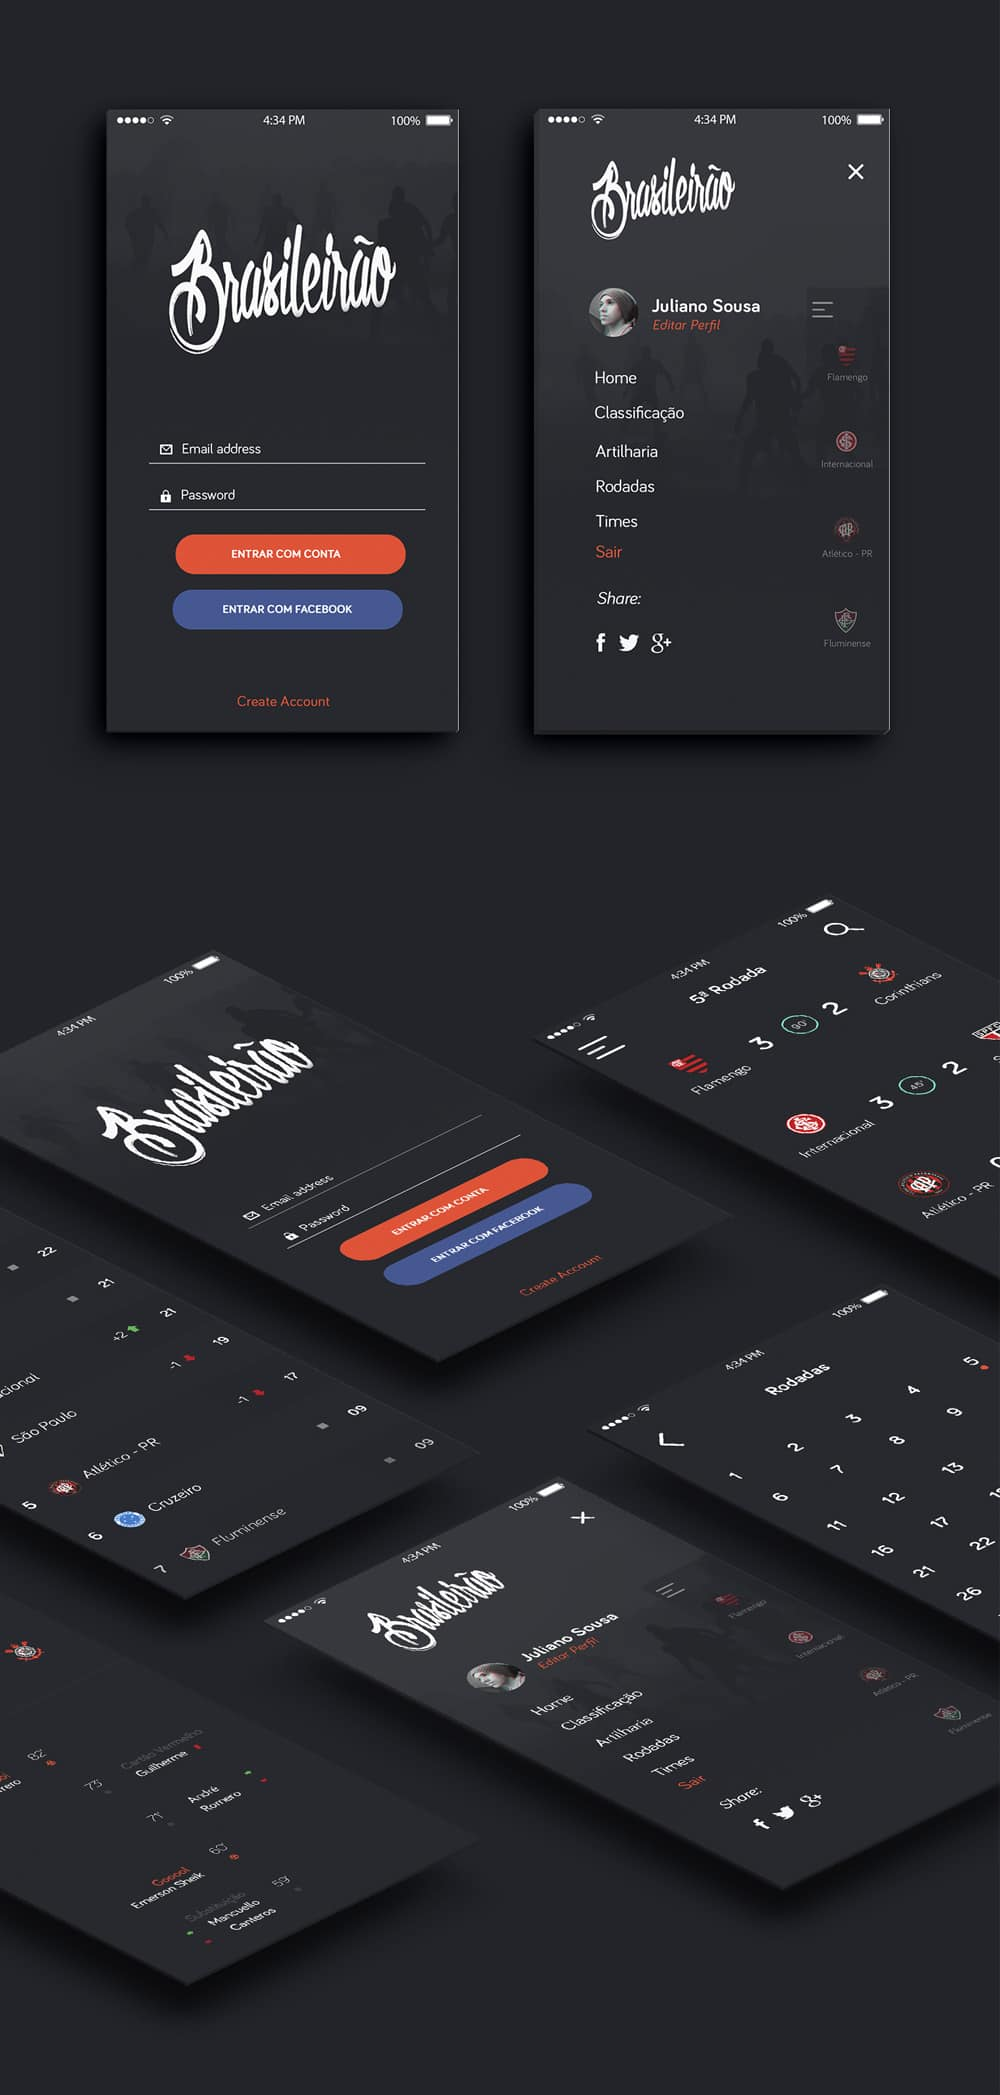 Football-Mobile-App-UI-PSD.jpg